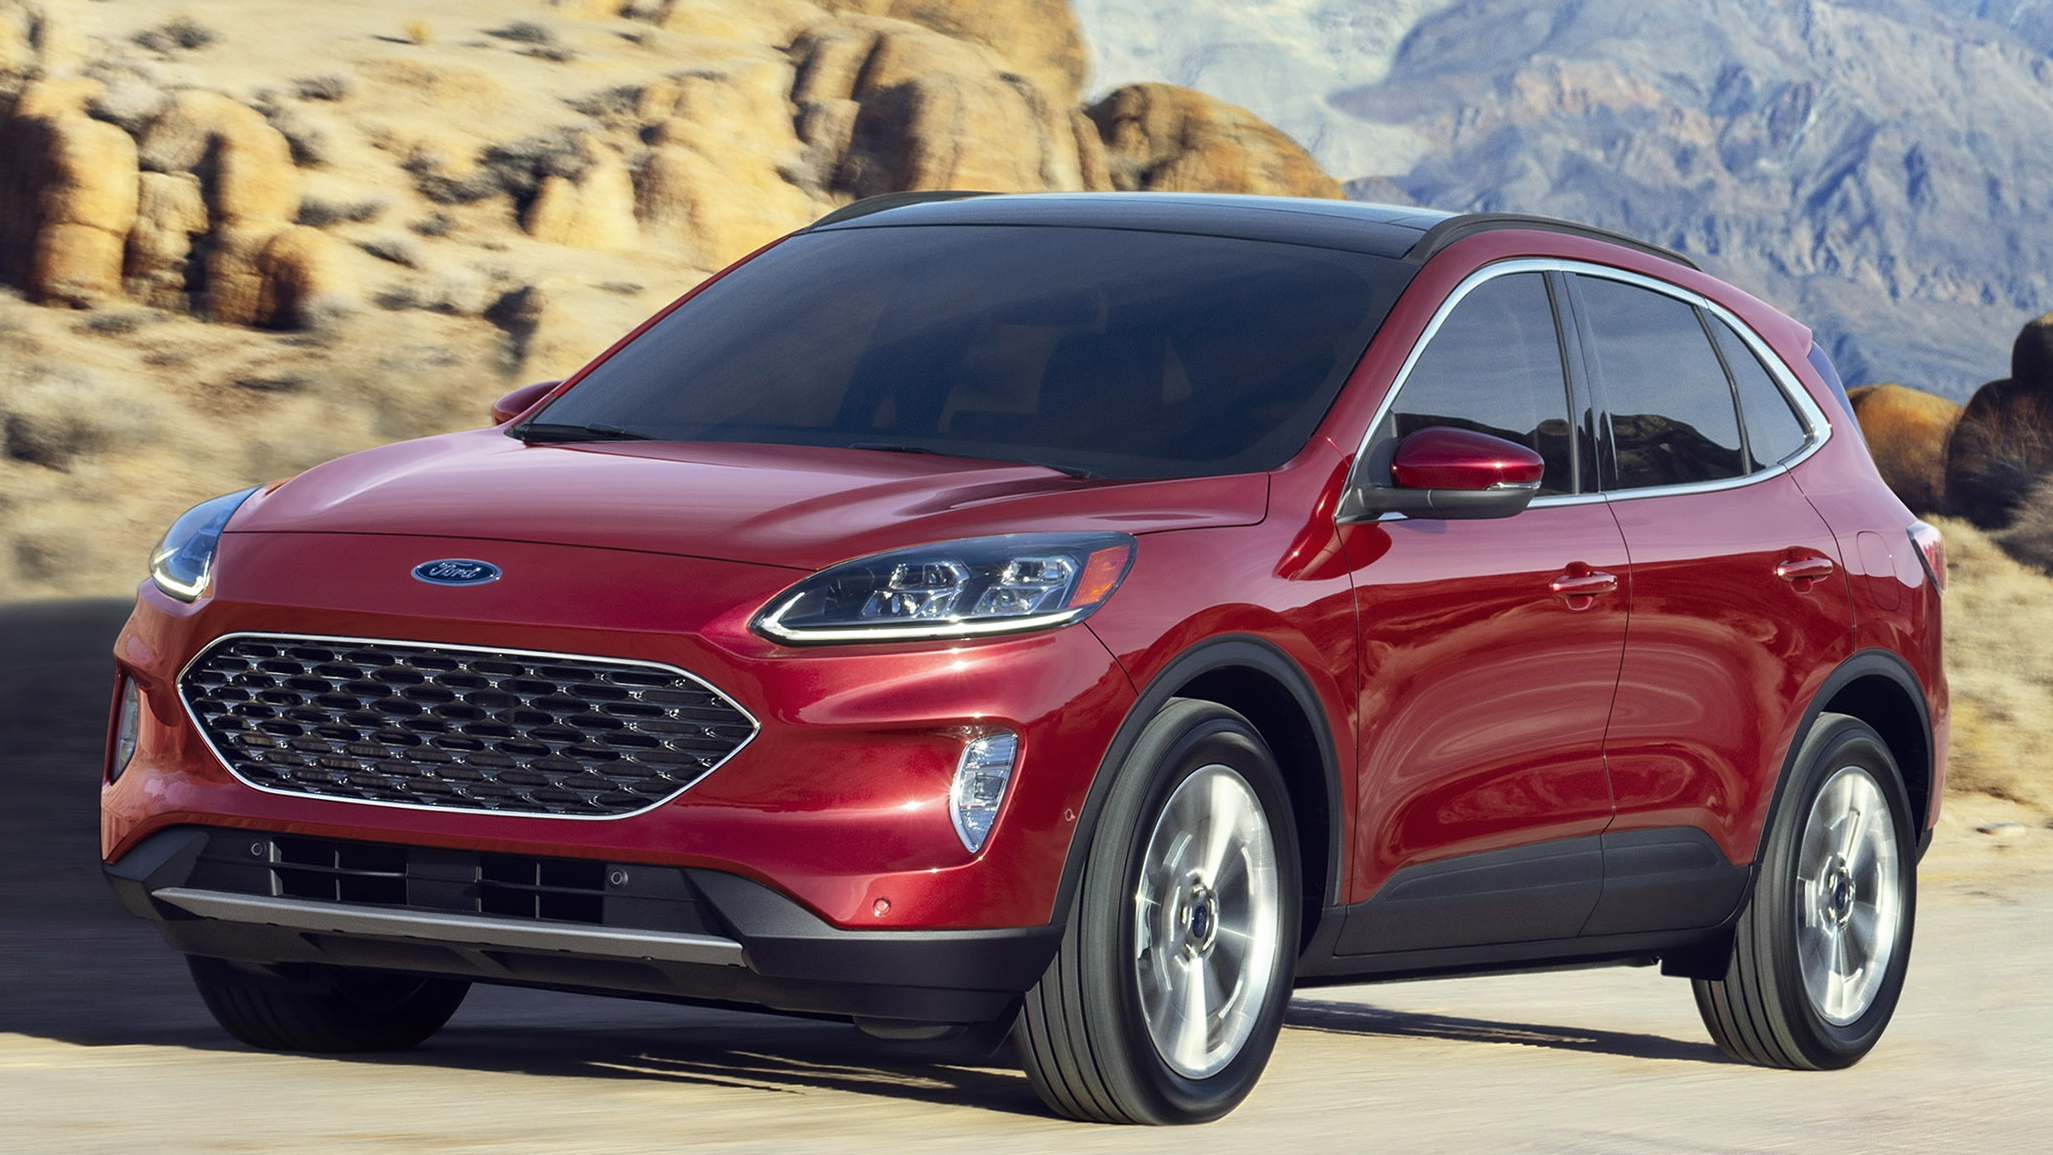 2020 Ford Urban Escapelge-Cts